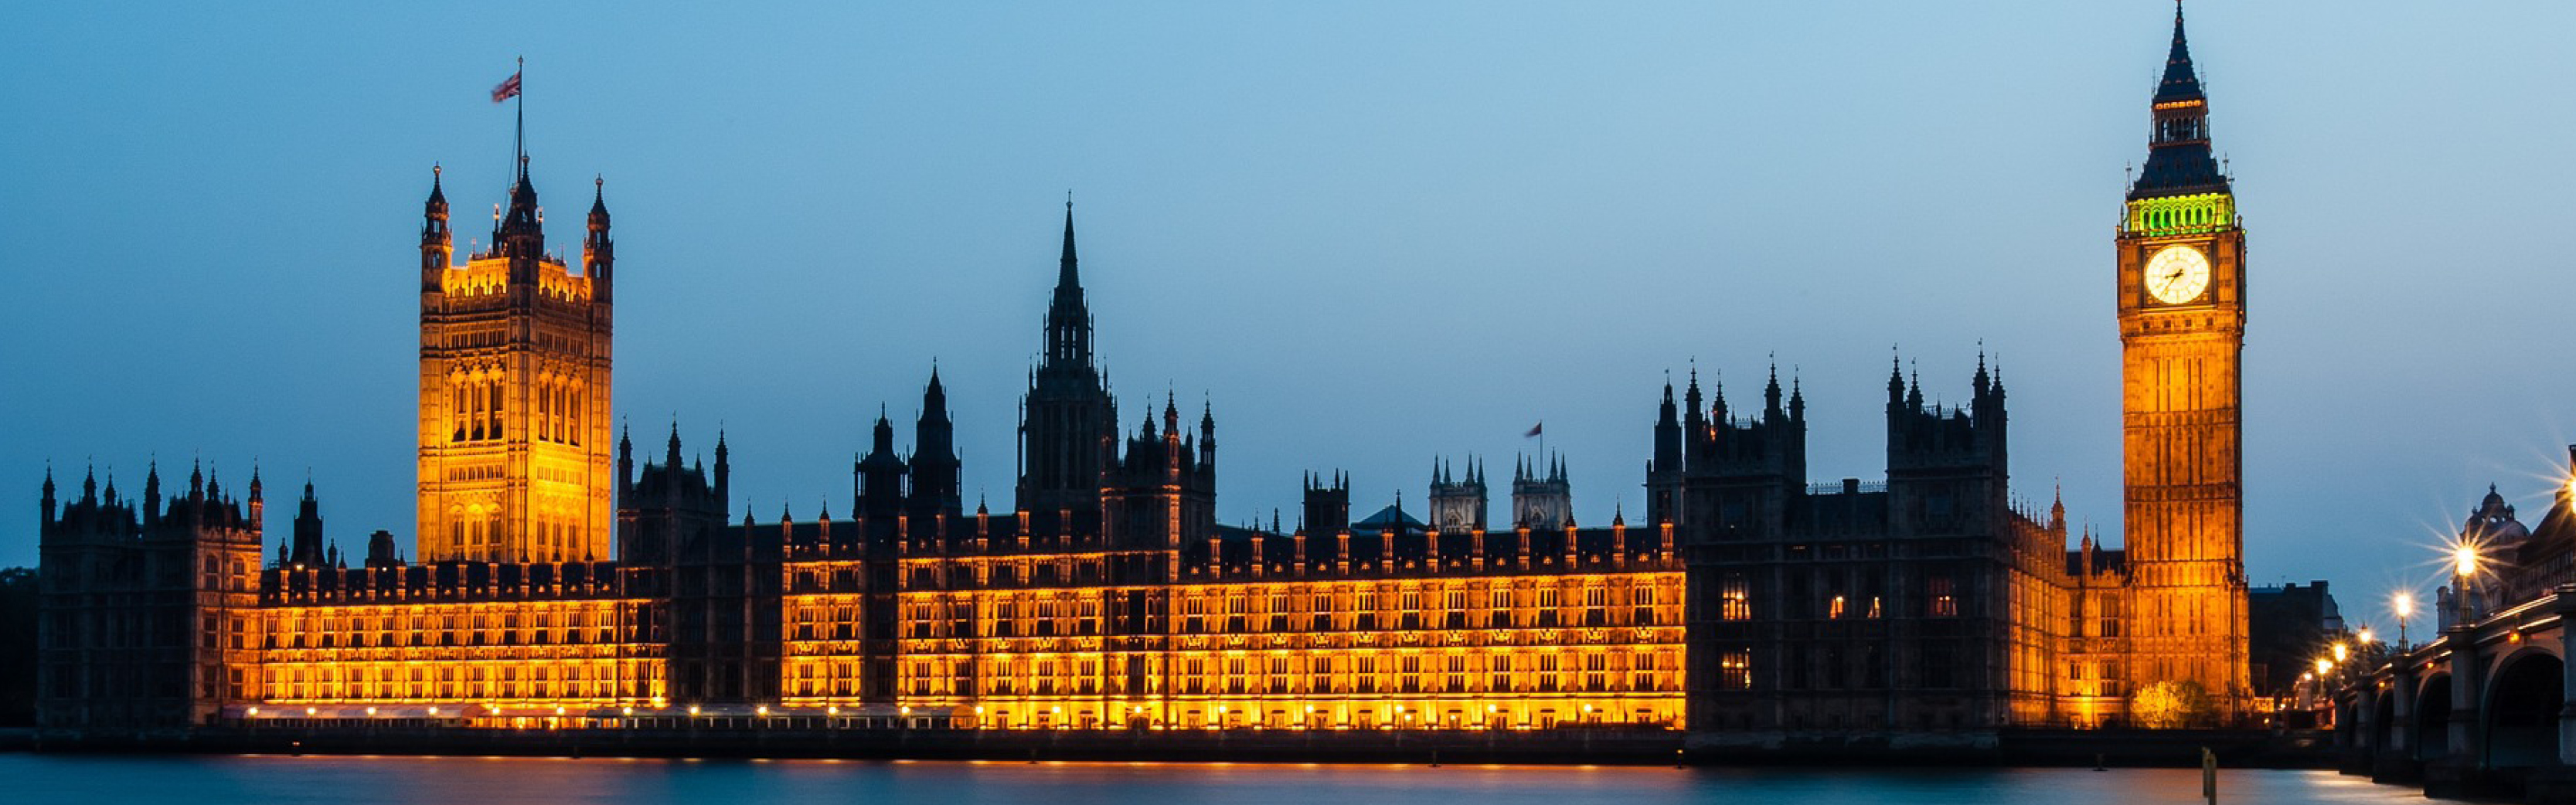 MPs reject inclusion of animal sentience in UK law